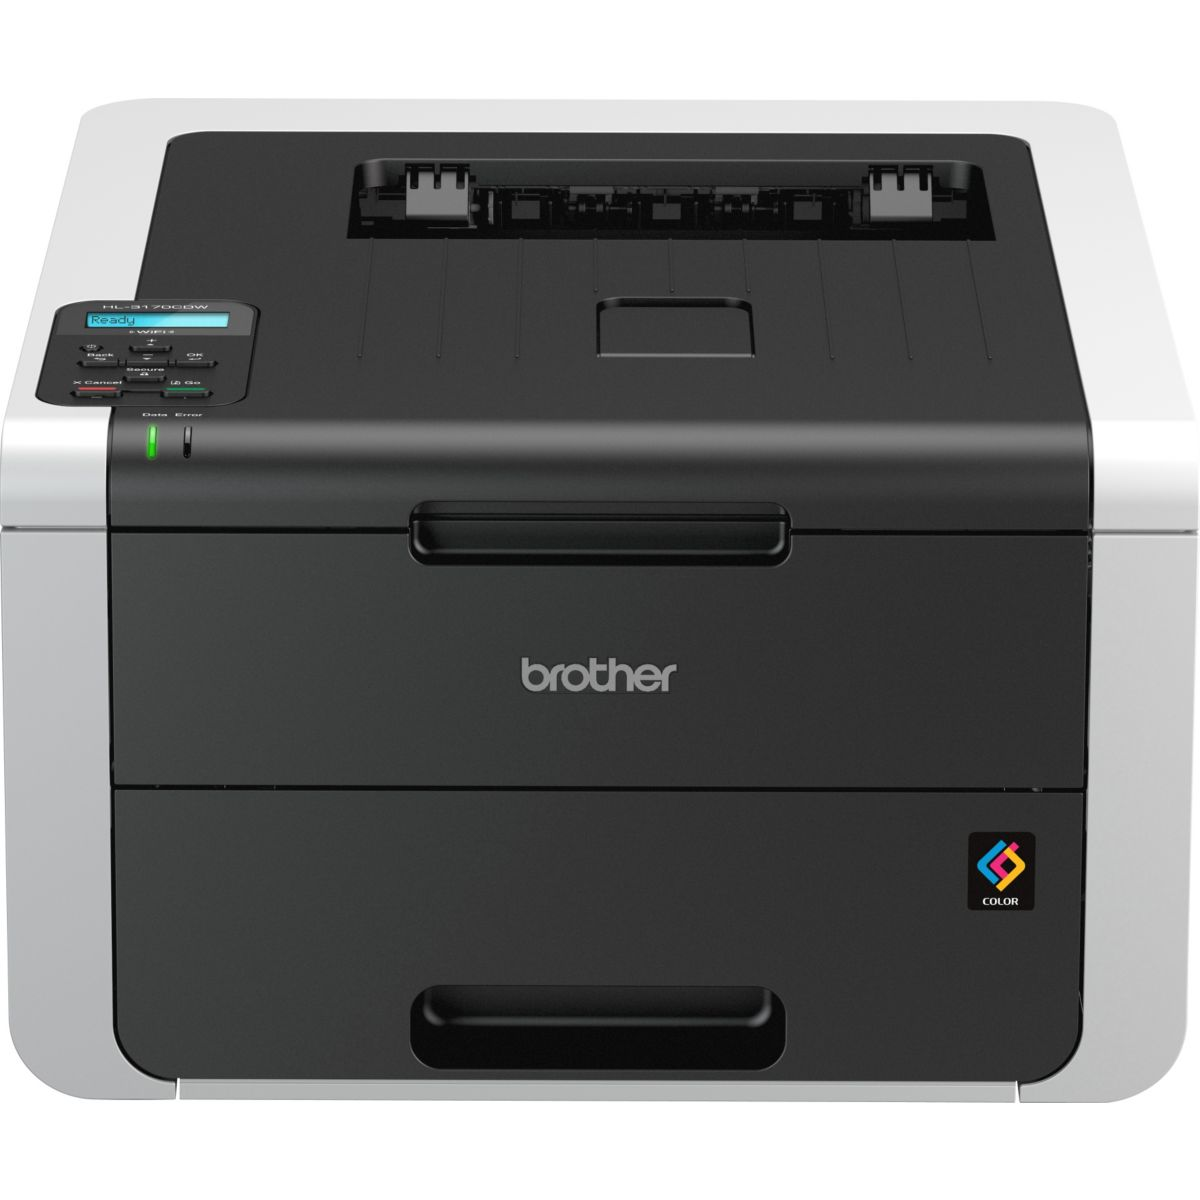 Imprimante monofonction laser couleur brother hl3170cdw (photo)